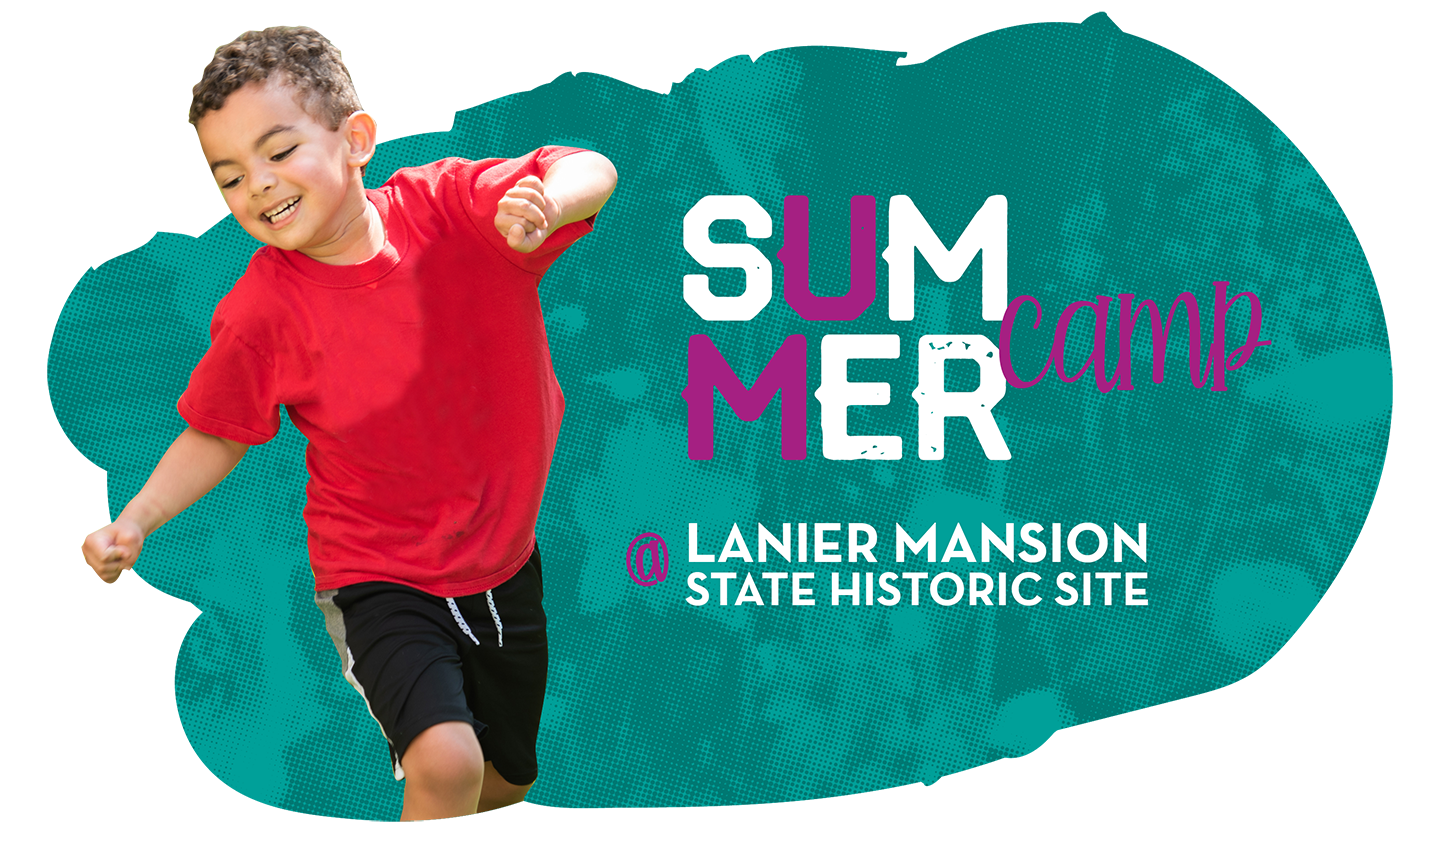 Summer camp at Lanier Mansion State Historic Site